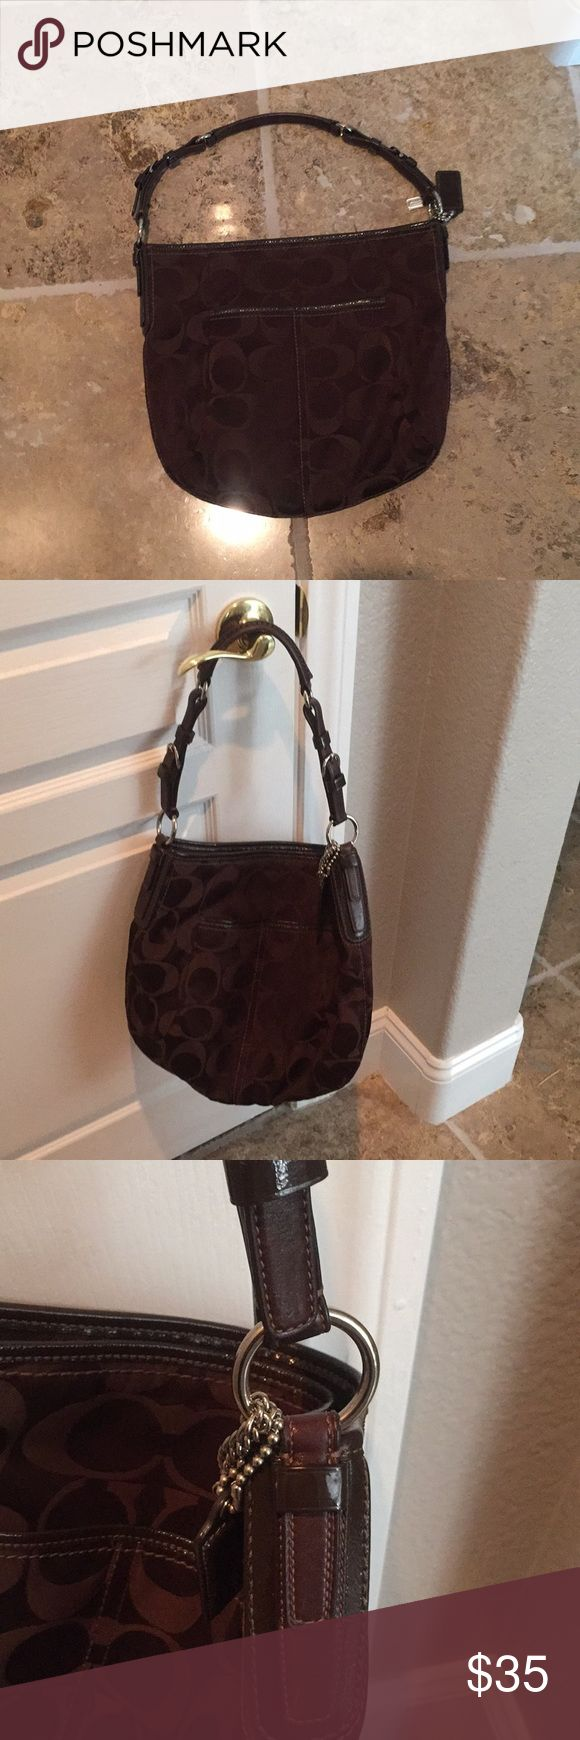 Chocolate Brown Hobo Coach Purse Cute large hobo coach bag. Goes with everything. Silver hardware. Excellent condition. Coach Bags Hobos